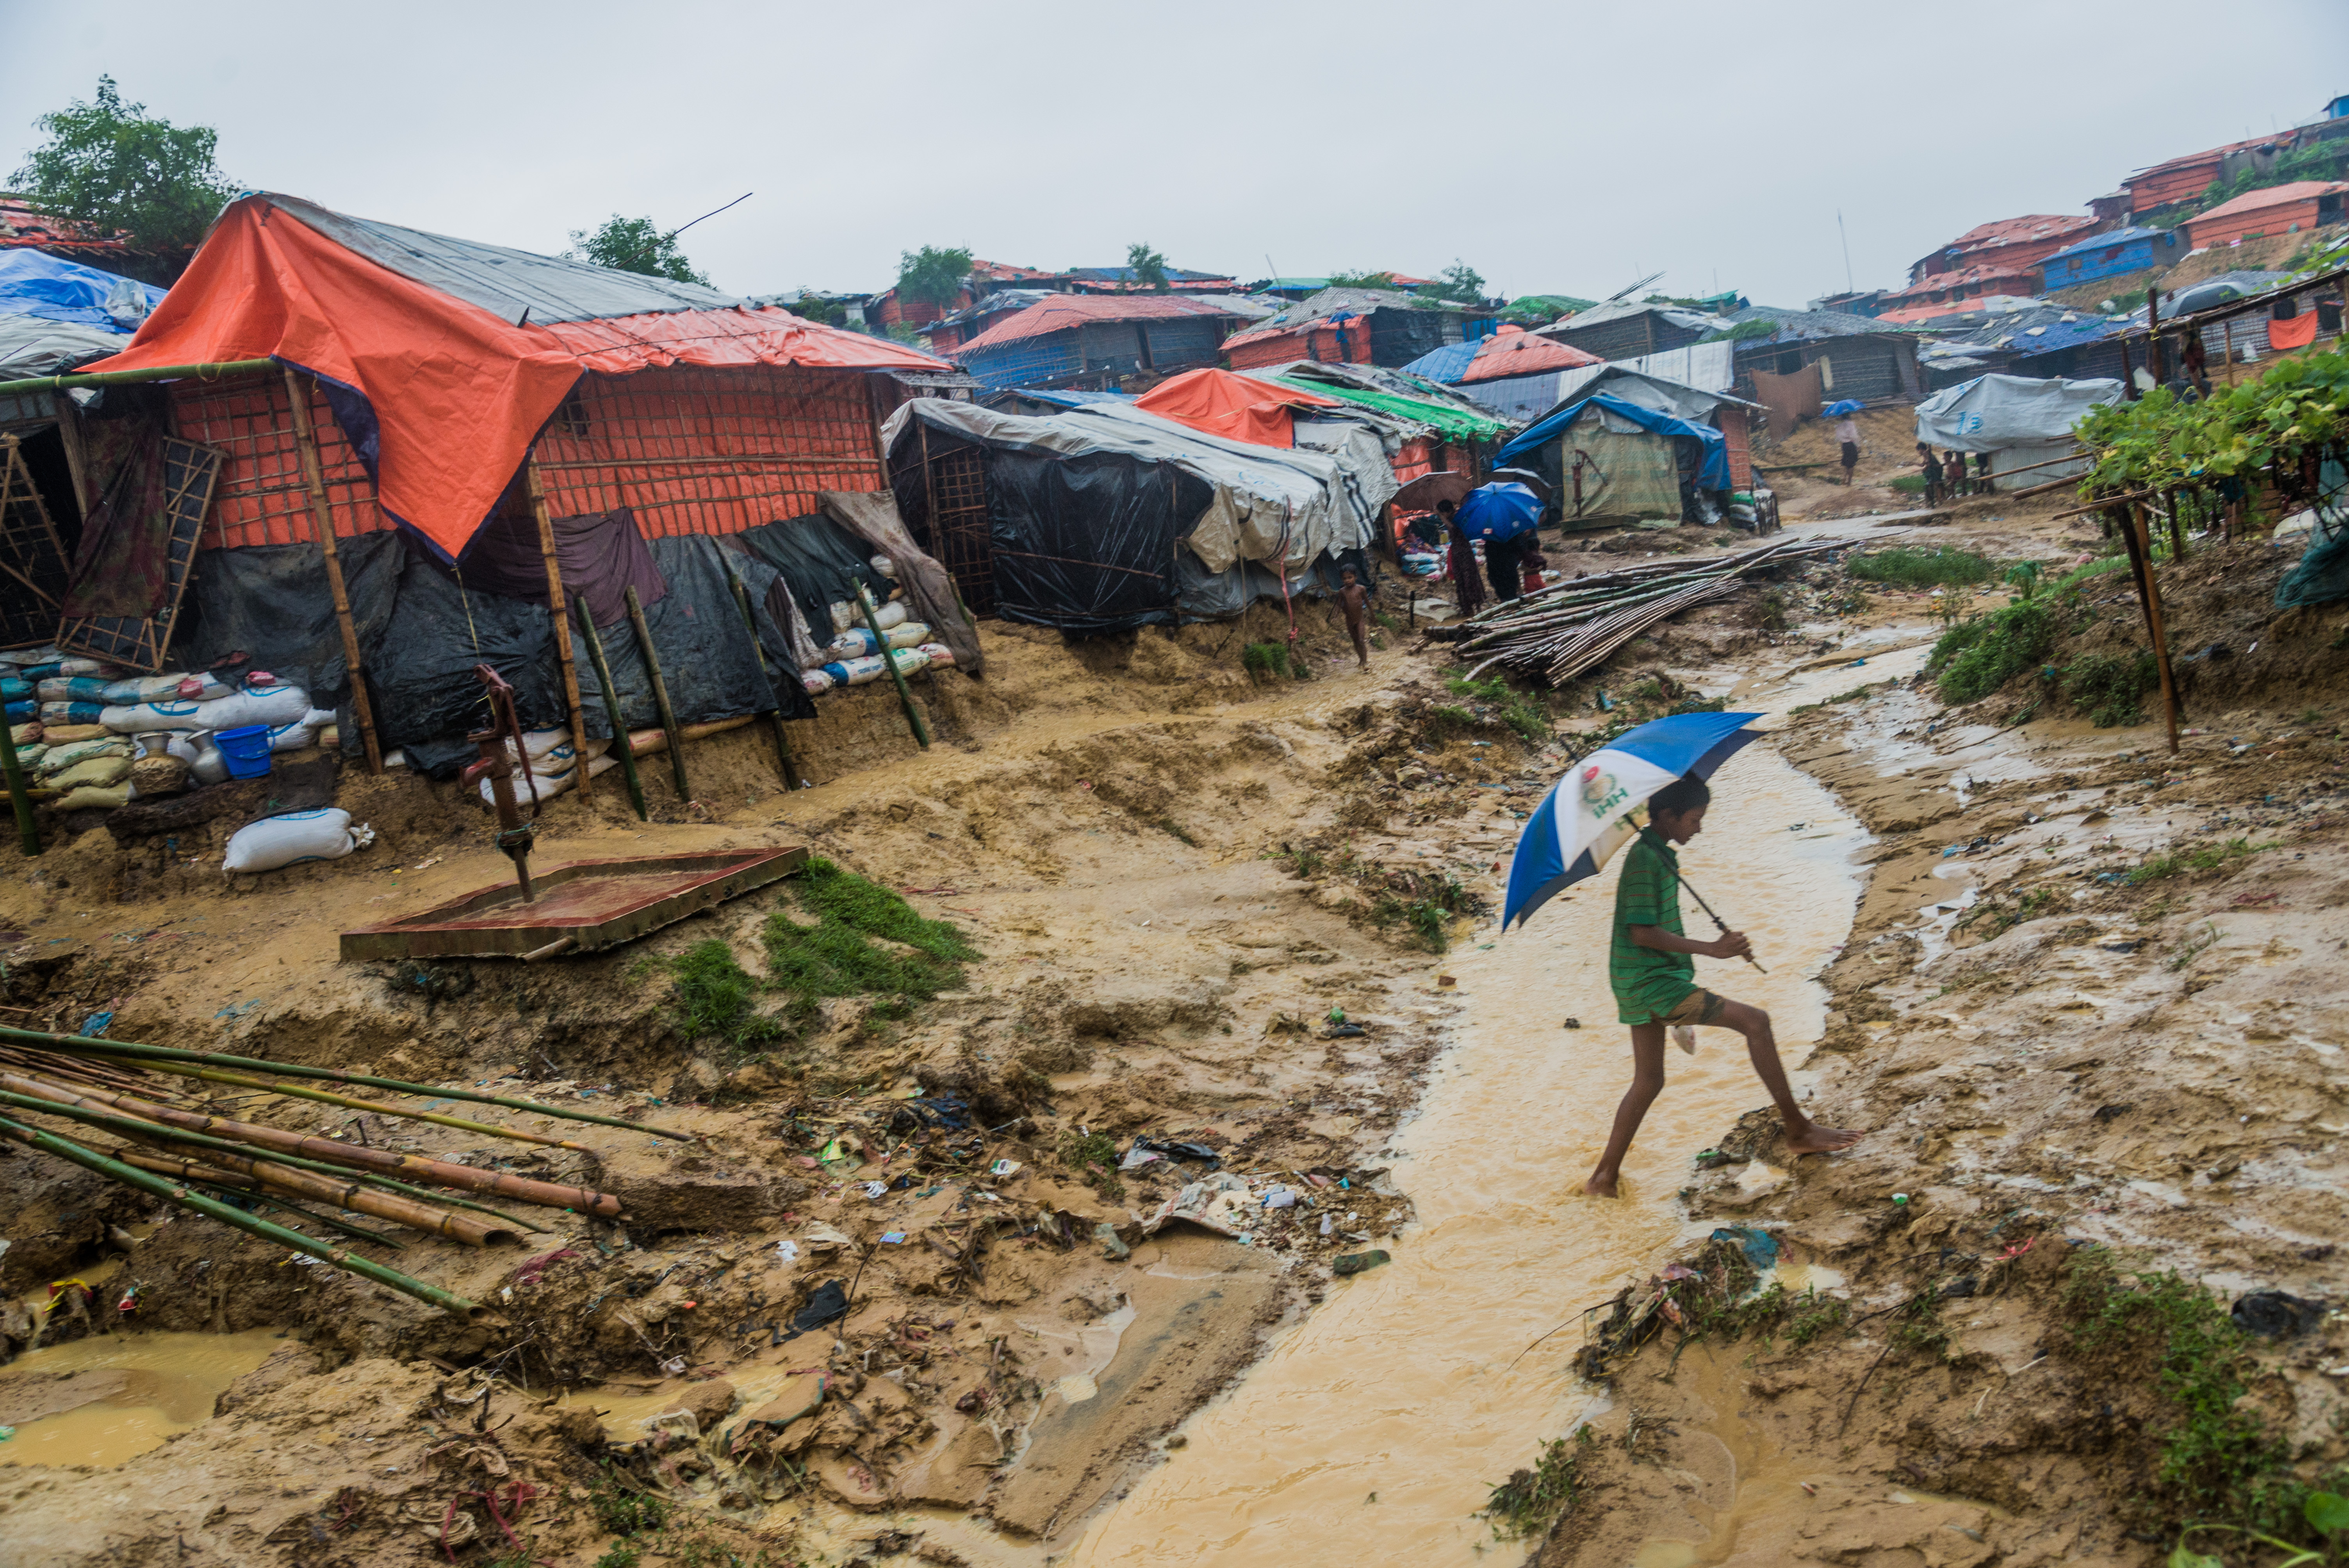 A Rohingya child walks through the Kutupalong makeshift shelter in Cox's Bazar, Bangladesh on June 13, 2018.